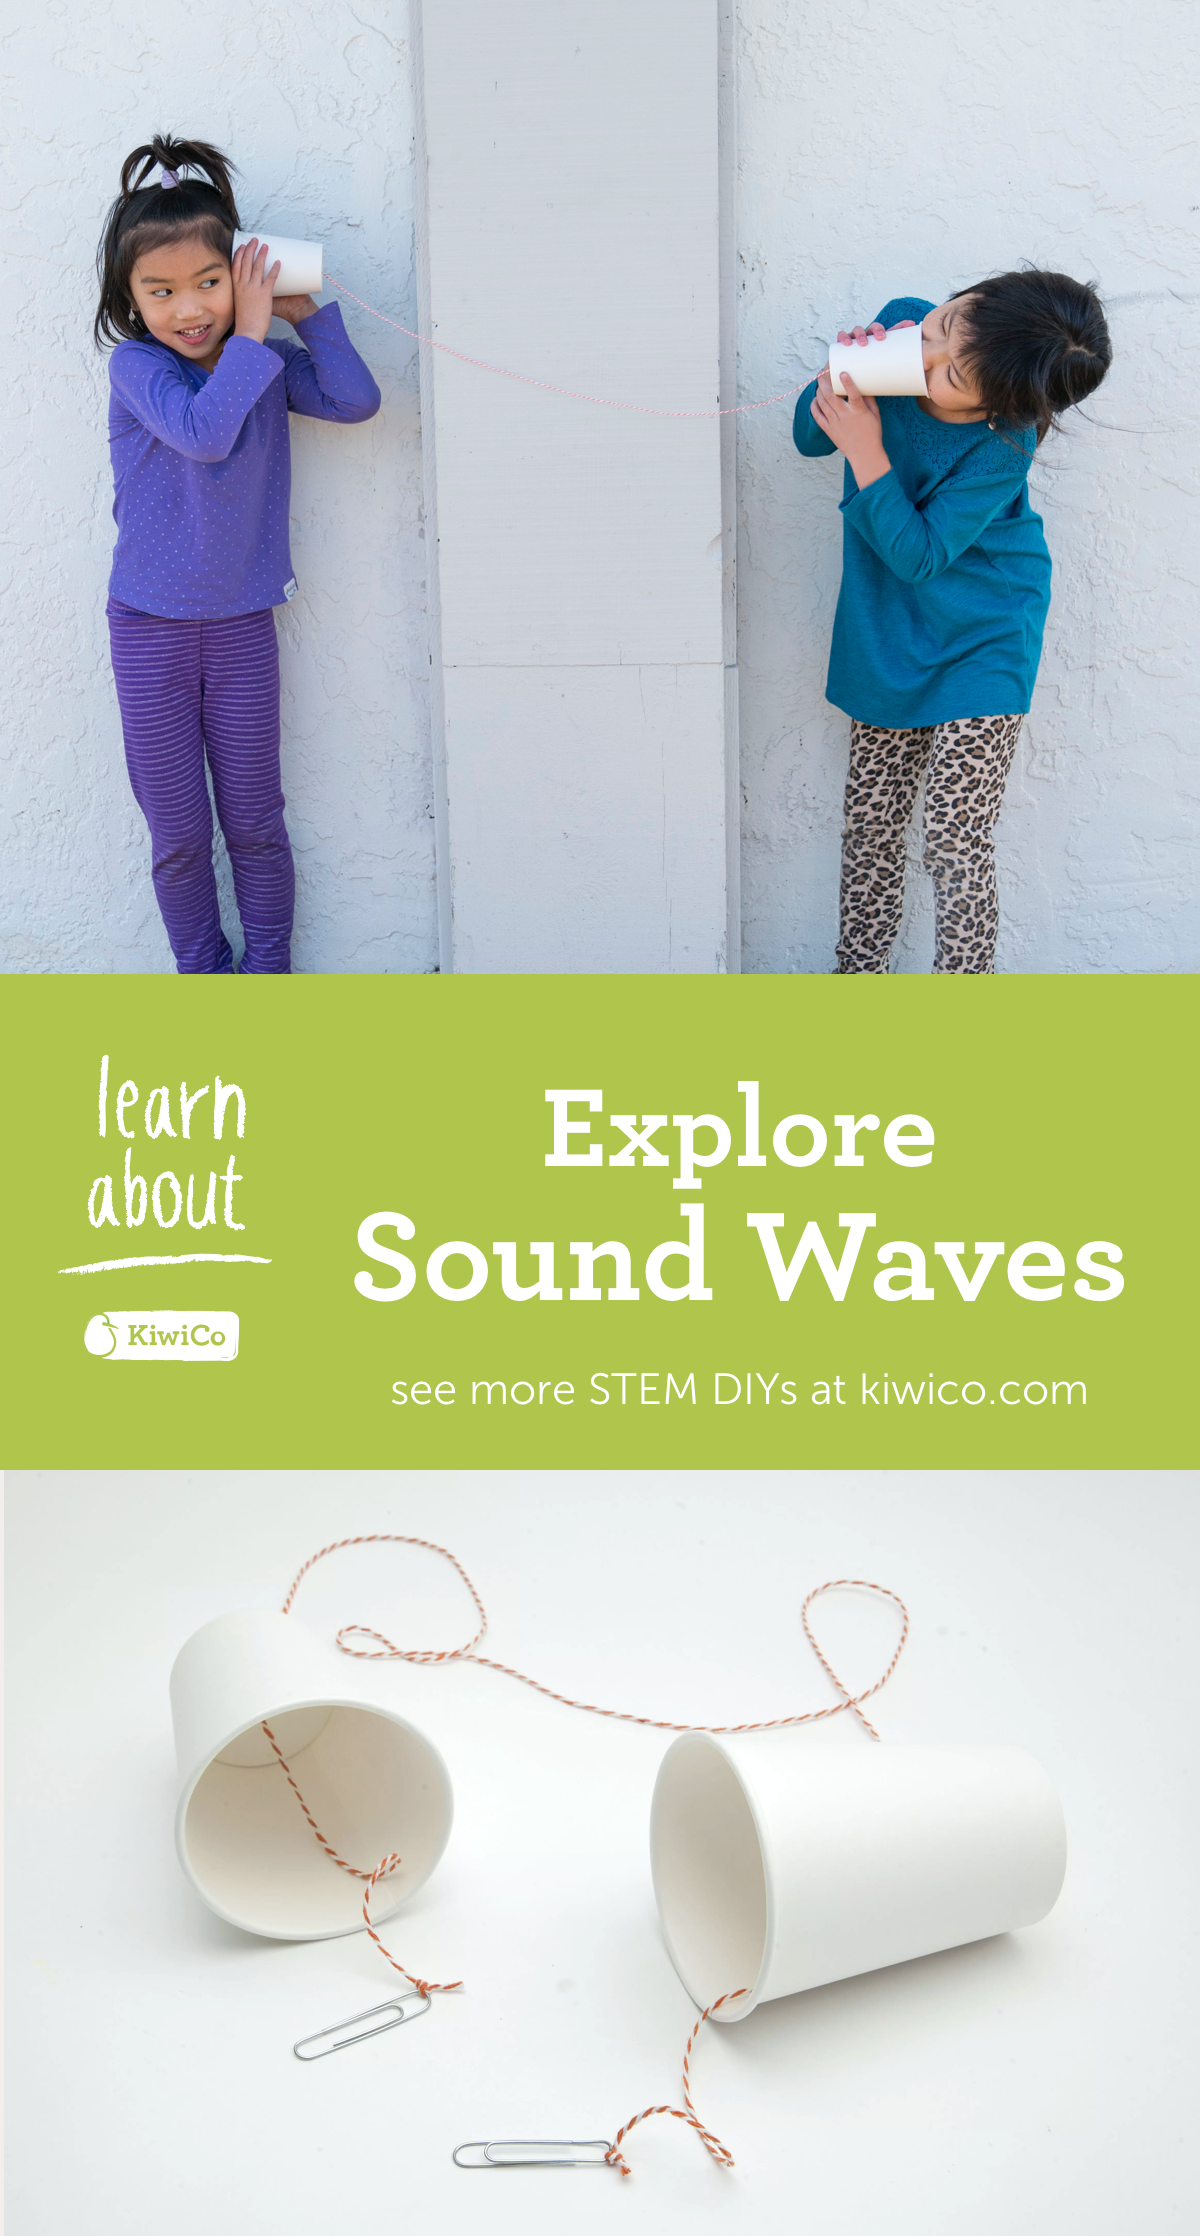 Explore The Physics Of Sound Waves With This Paper Cup